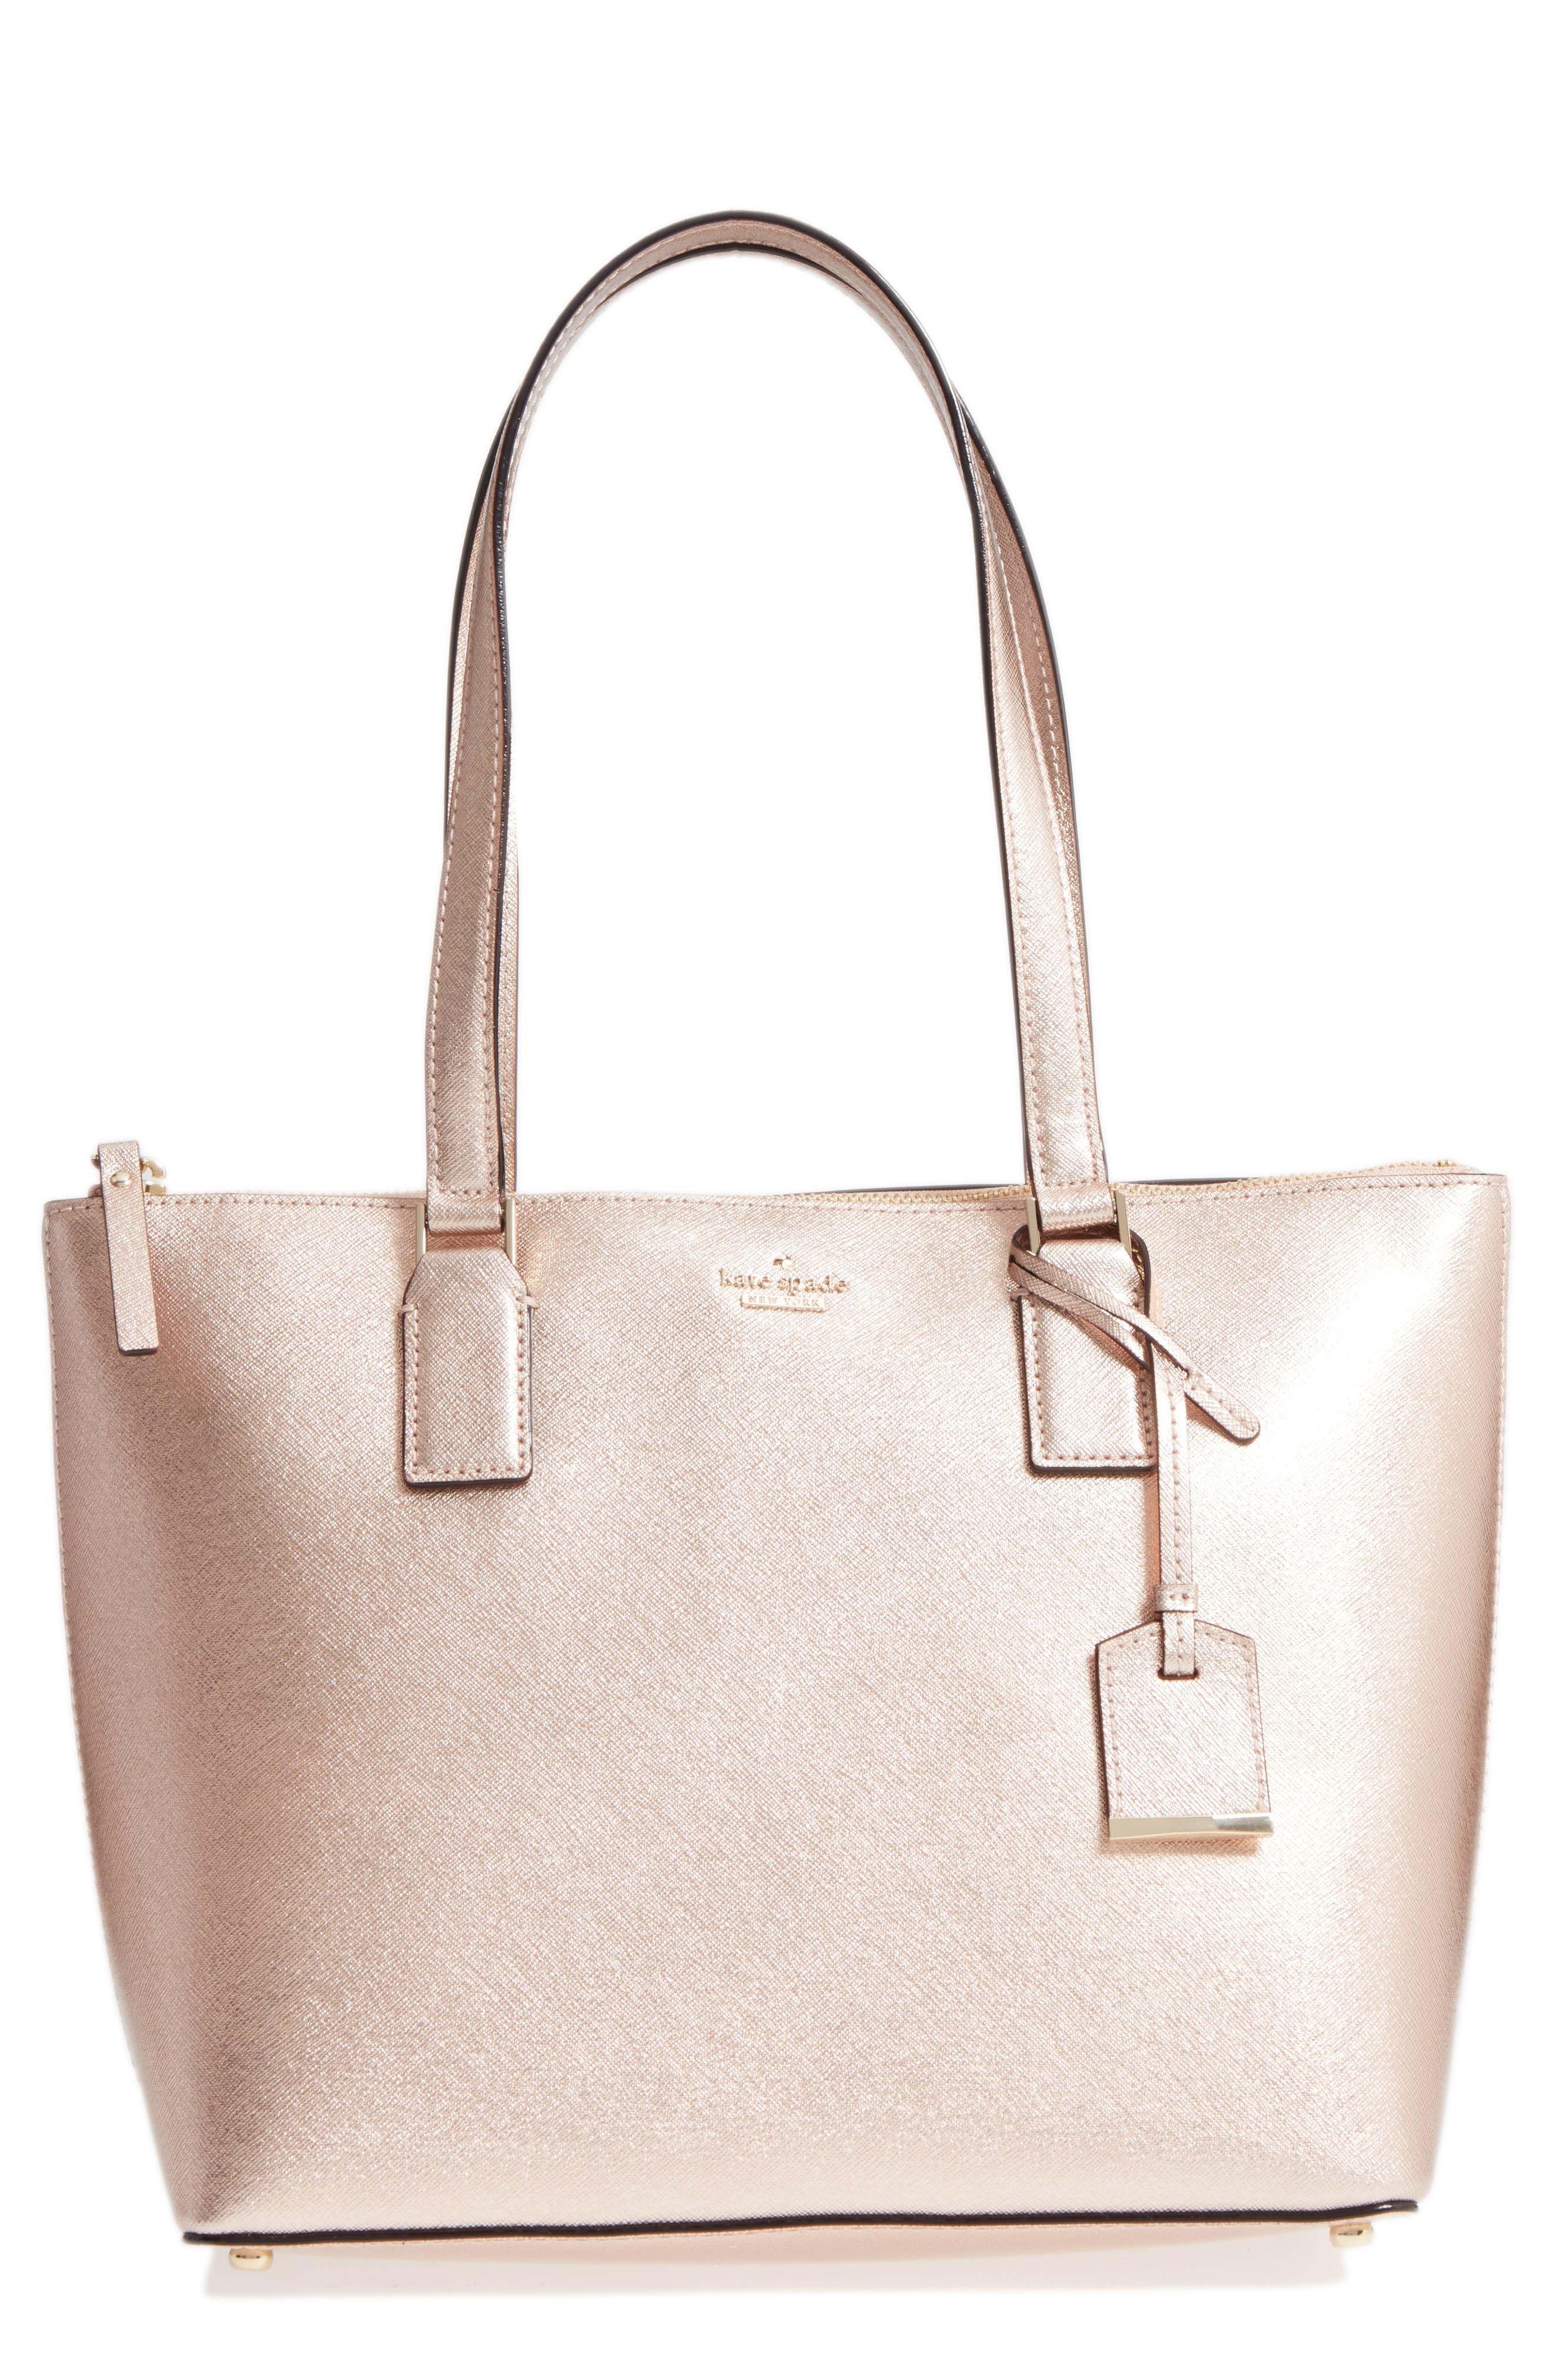 Main Image - kate spade new york cameron street - small lucie leather tote